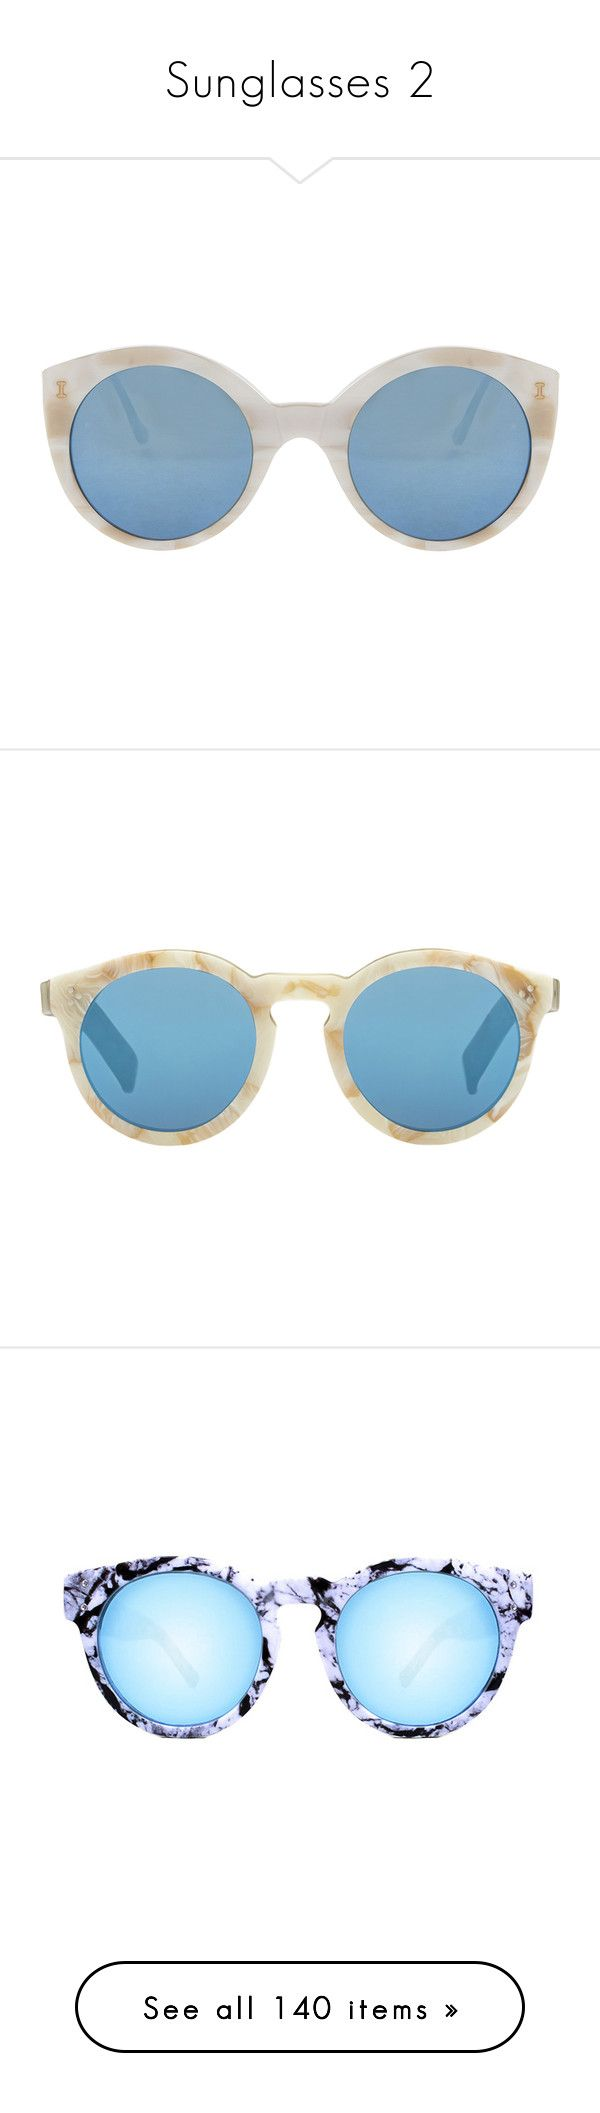 """""""Sunglasses 2"""" by tamara-40 ❤ liked on Polyvore featuring sunglasses, 2016, accessories, eyewear, glasses, clear water, mirror lens sunglasses, mirrored lens sunglasses, blue lens sunglasses and acetate sunglasses"""